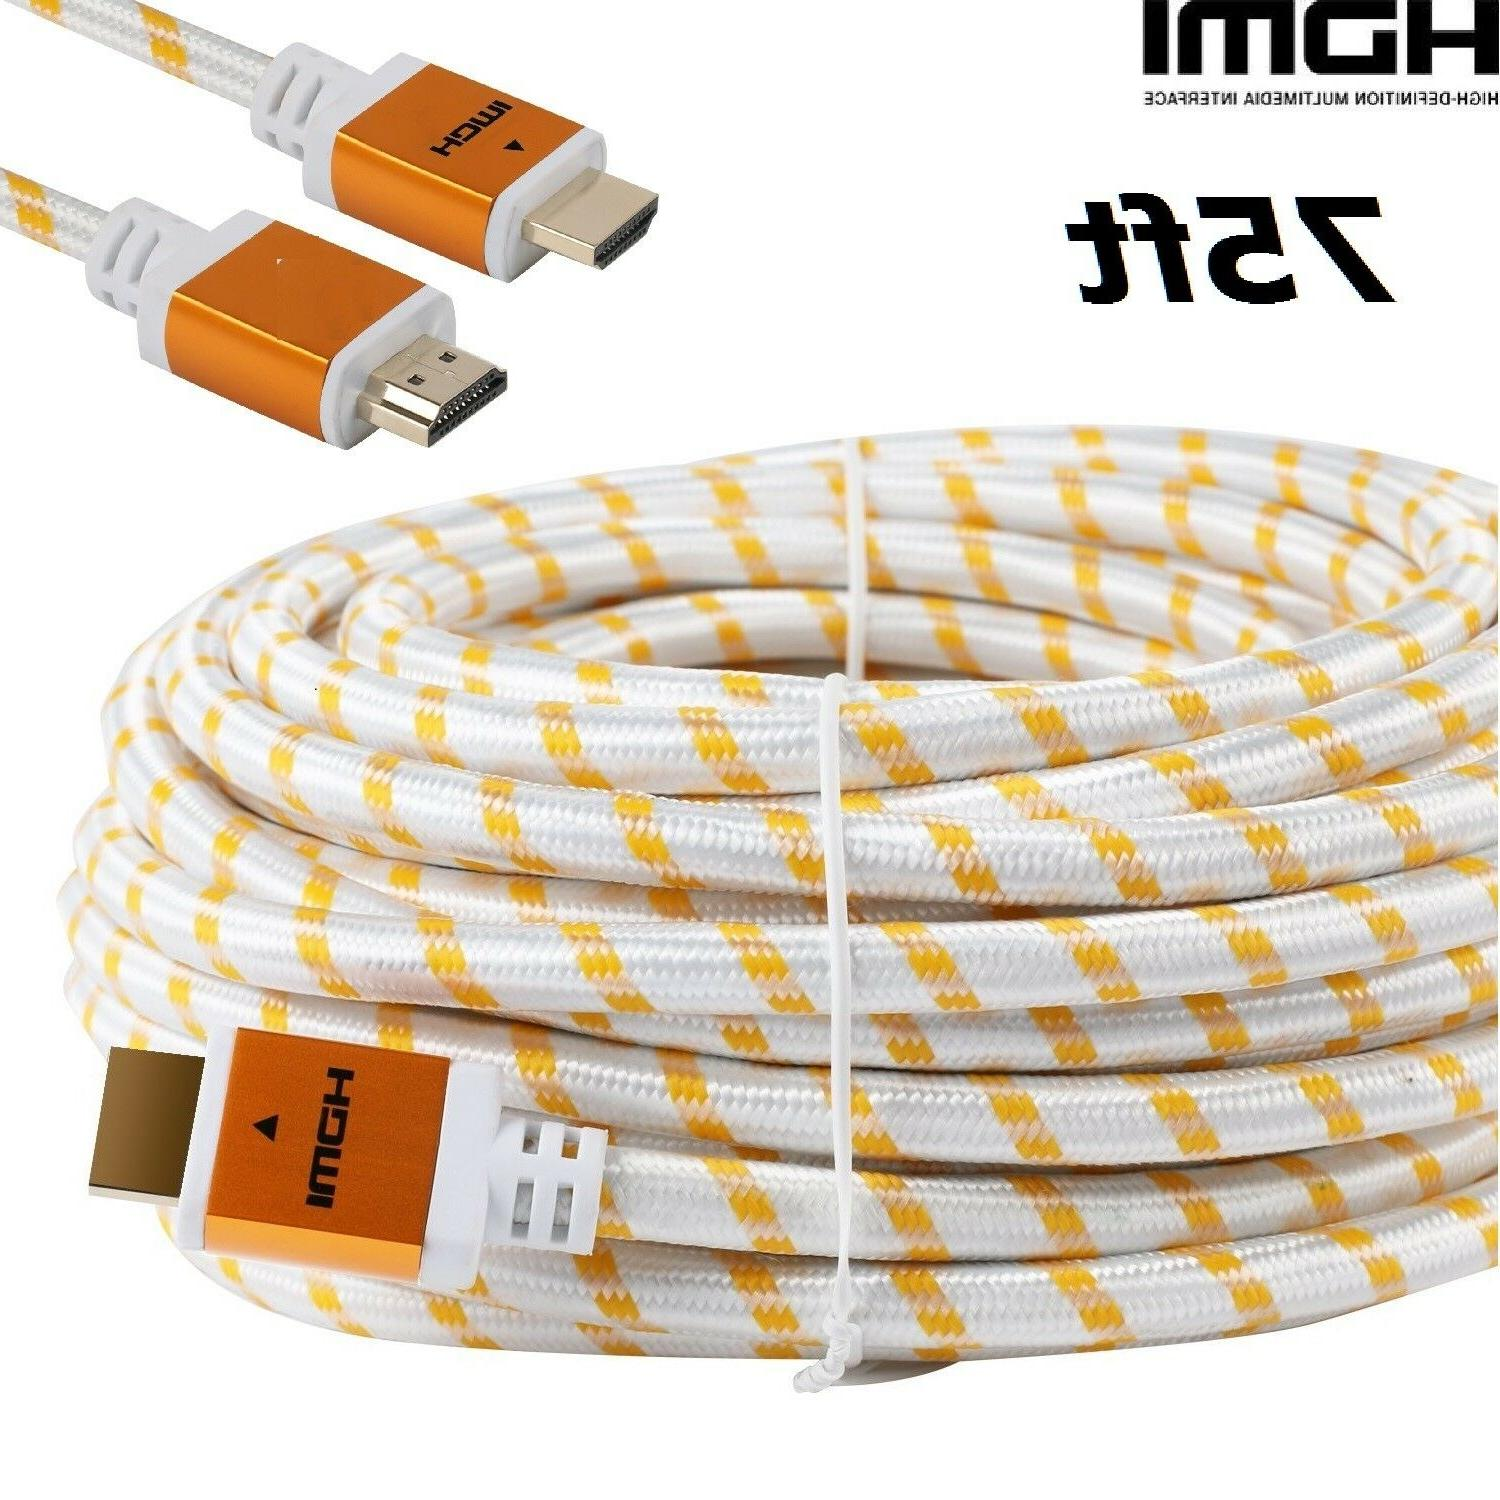 premium 75feet hdmi cable cord 75ft